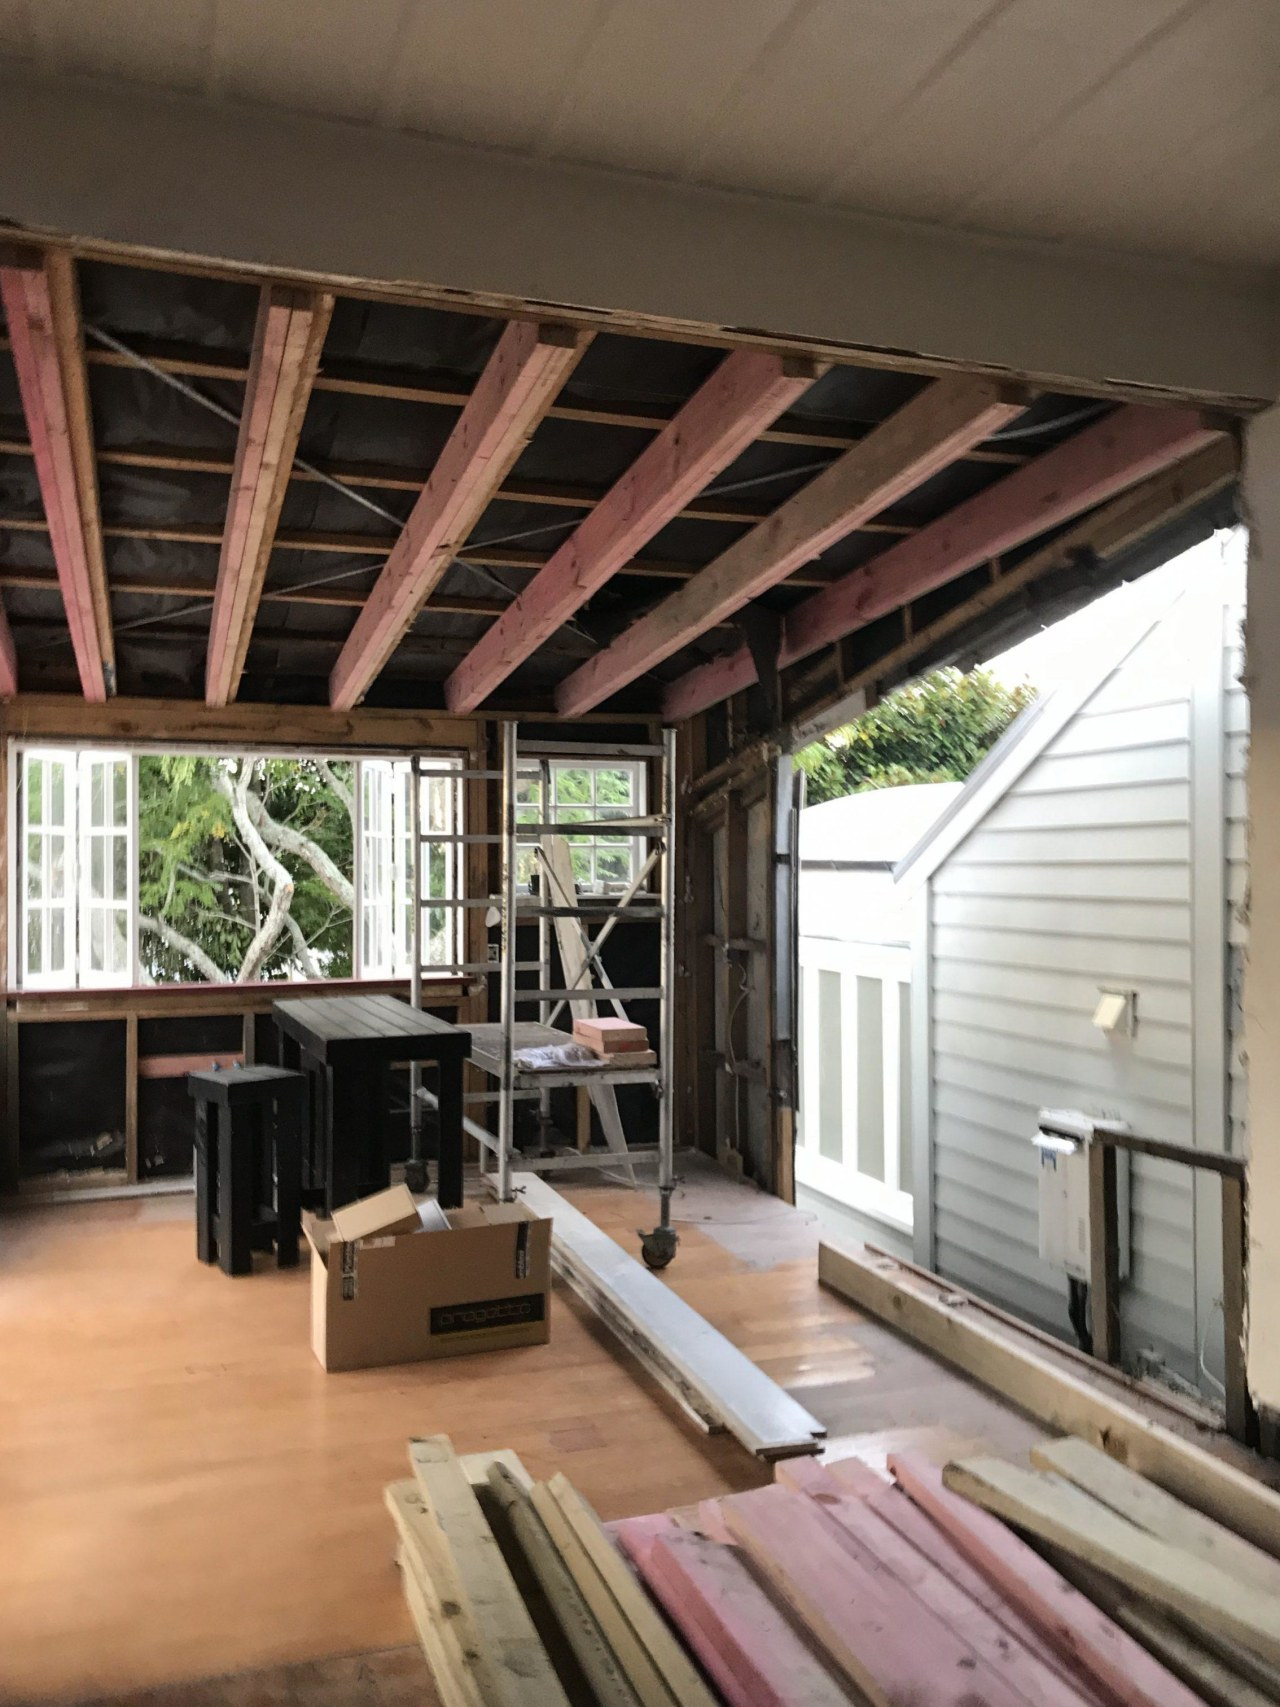 We had a whole wall removed and re-clad, architecture, beam, building, ceiling, daylighting, deck, floor, hardwood, home, house, interior design, loft, property, real estate, roof, room, window, wood, wood flooring, black